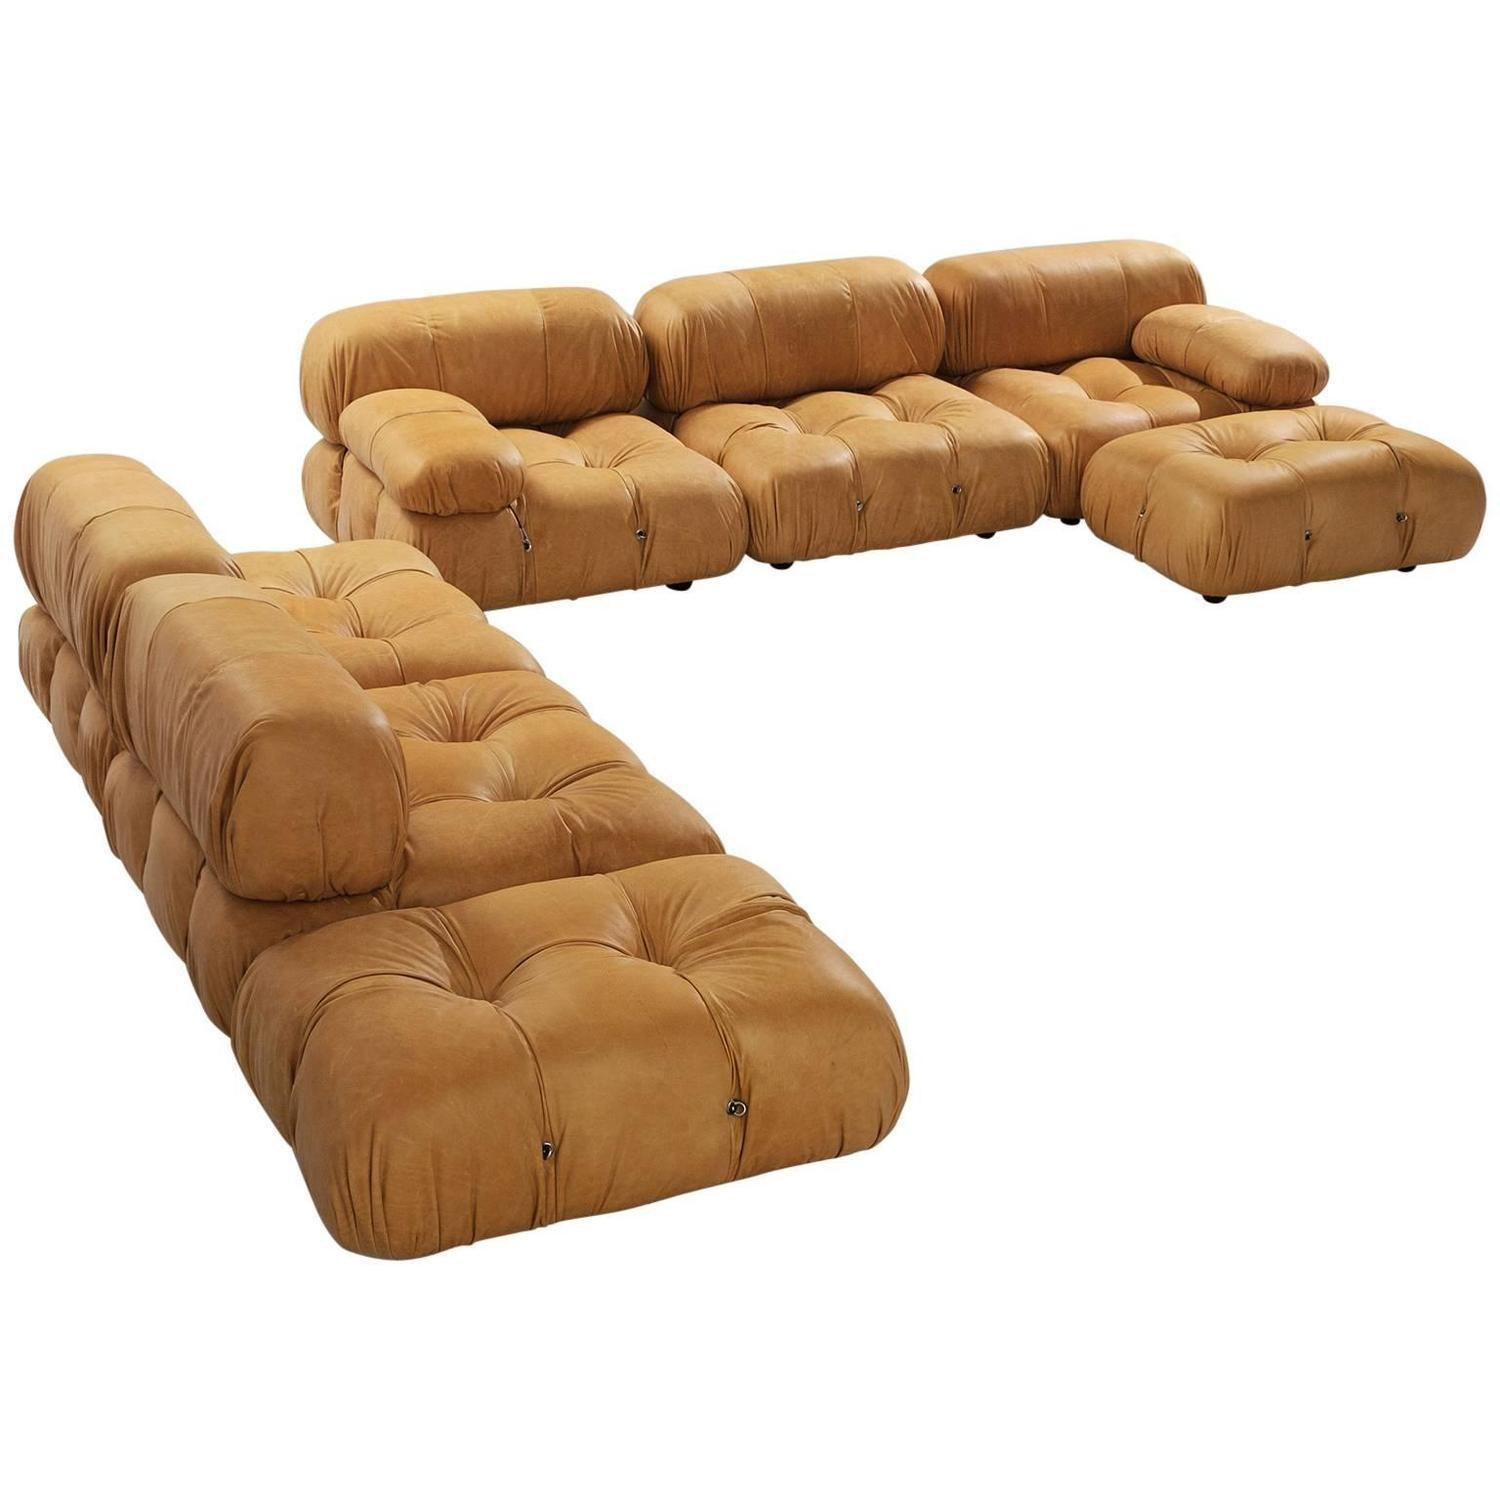 Modular Furniture Sofa: 2018 Latest Modular Sofas